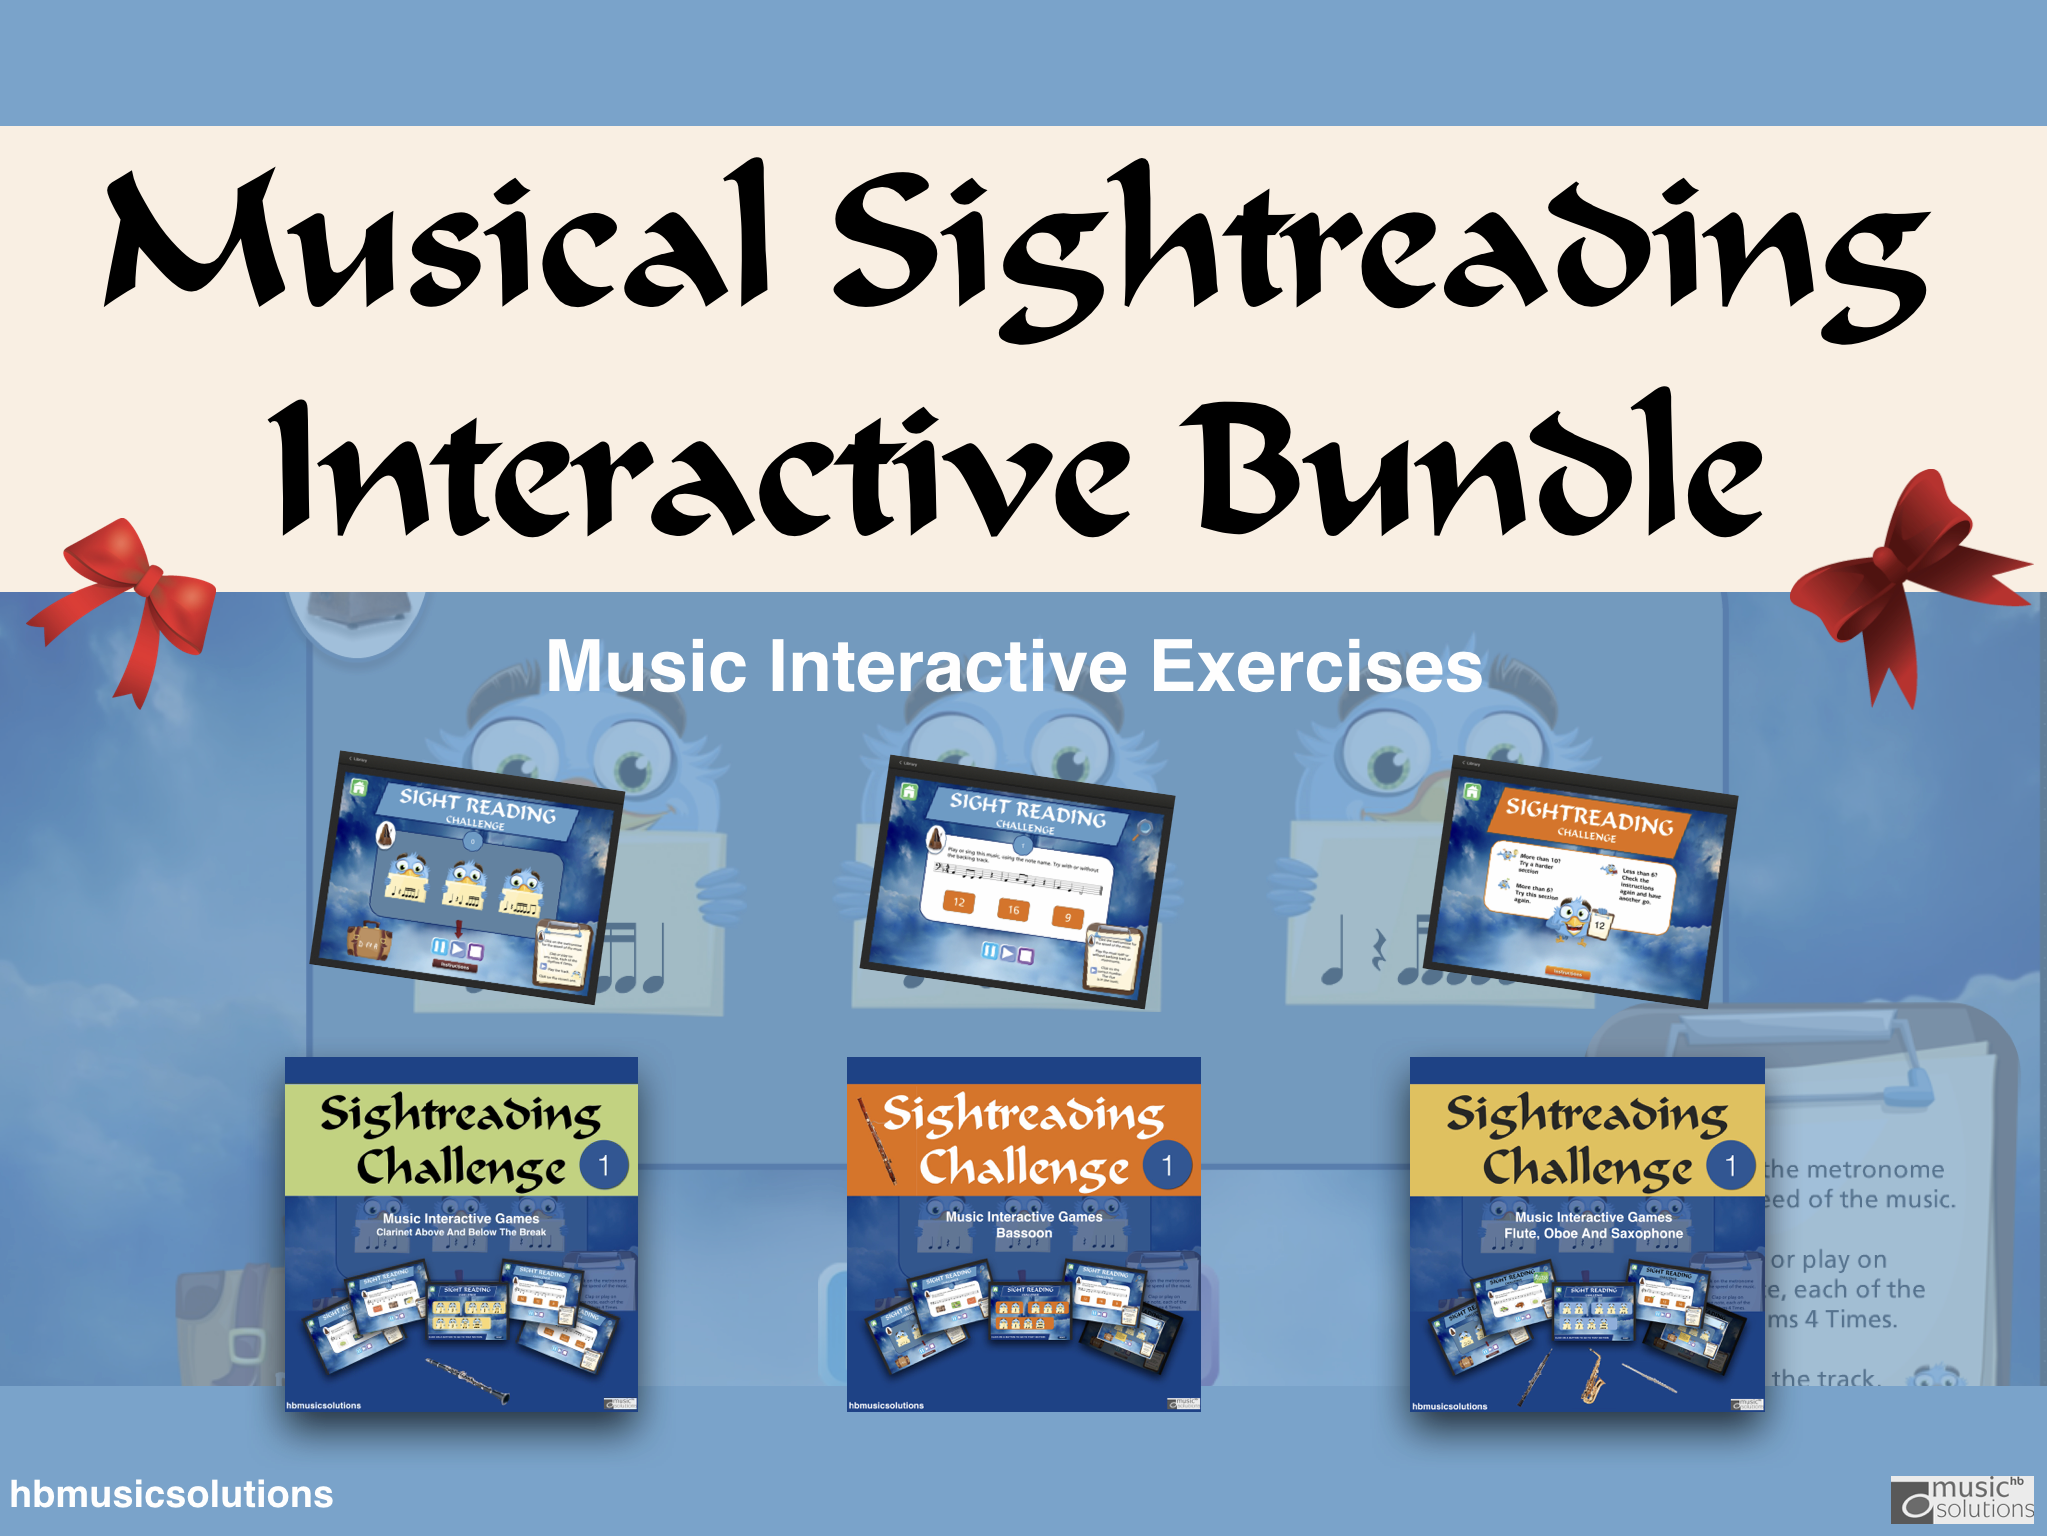 Musical Sight-reading Interactive Bundle